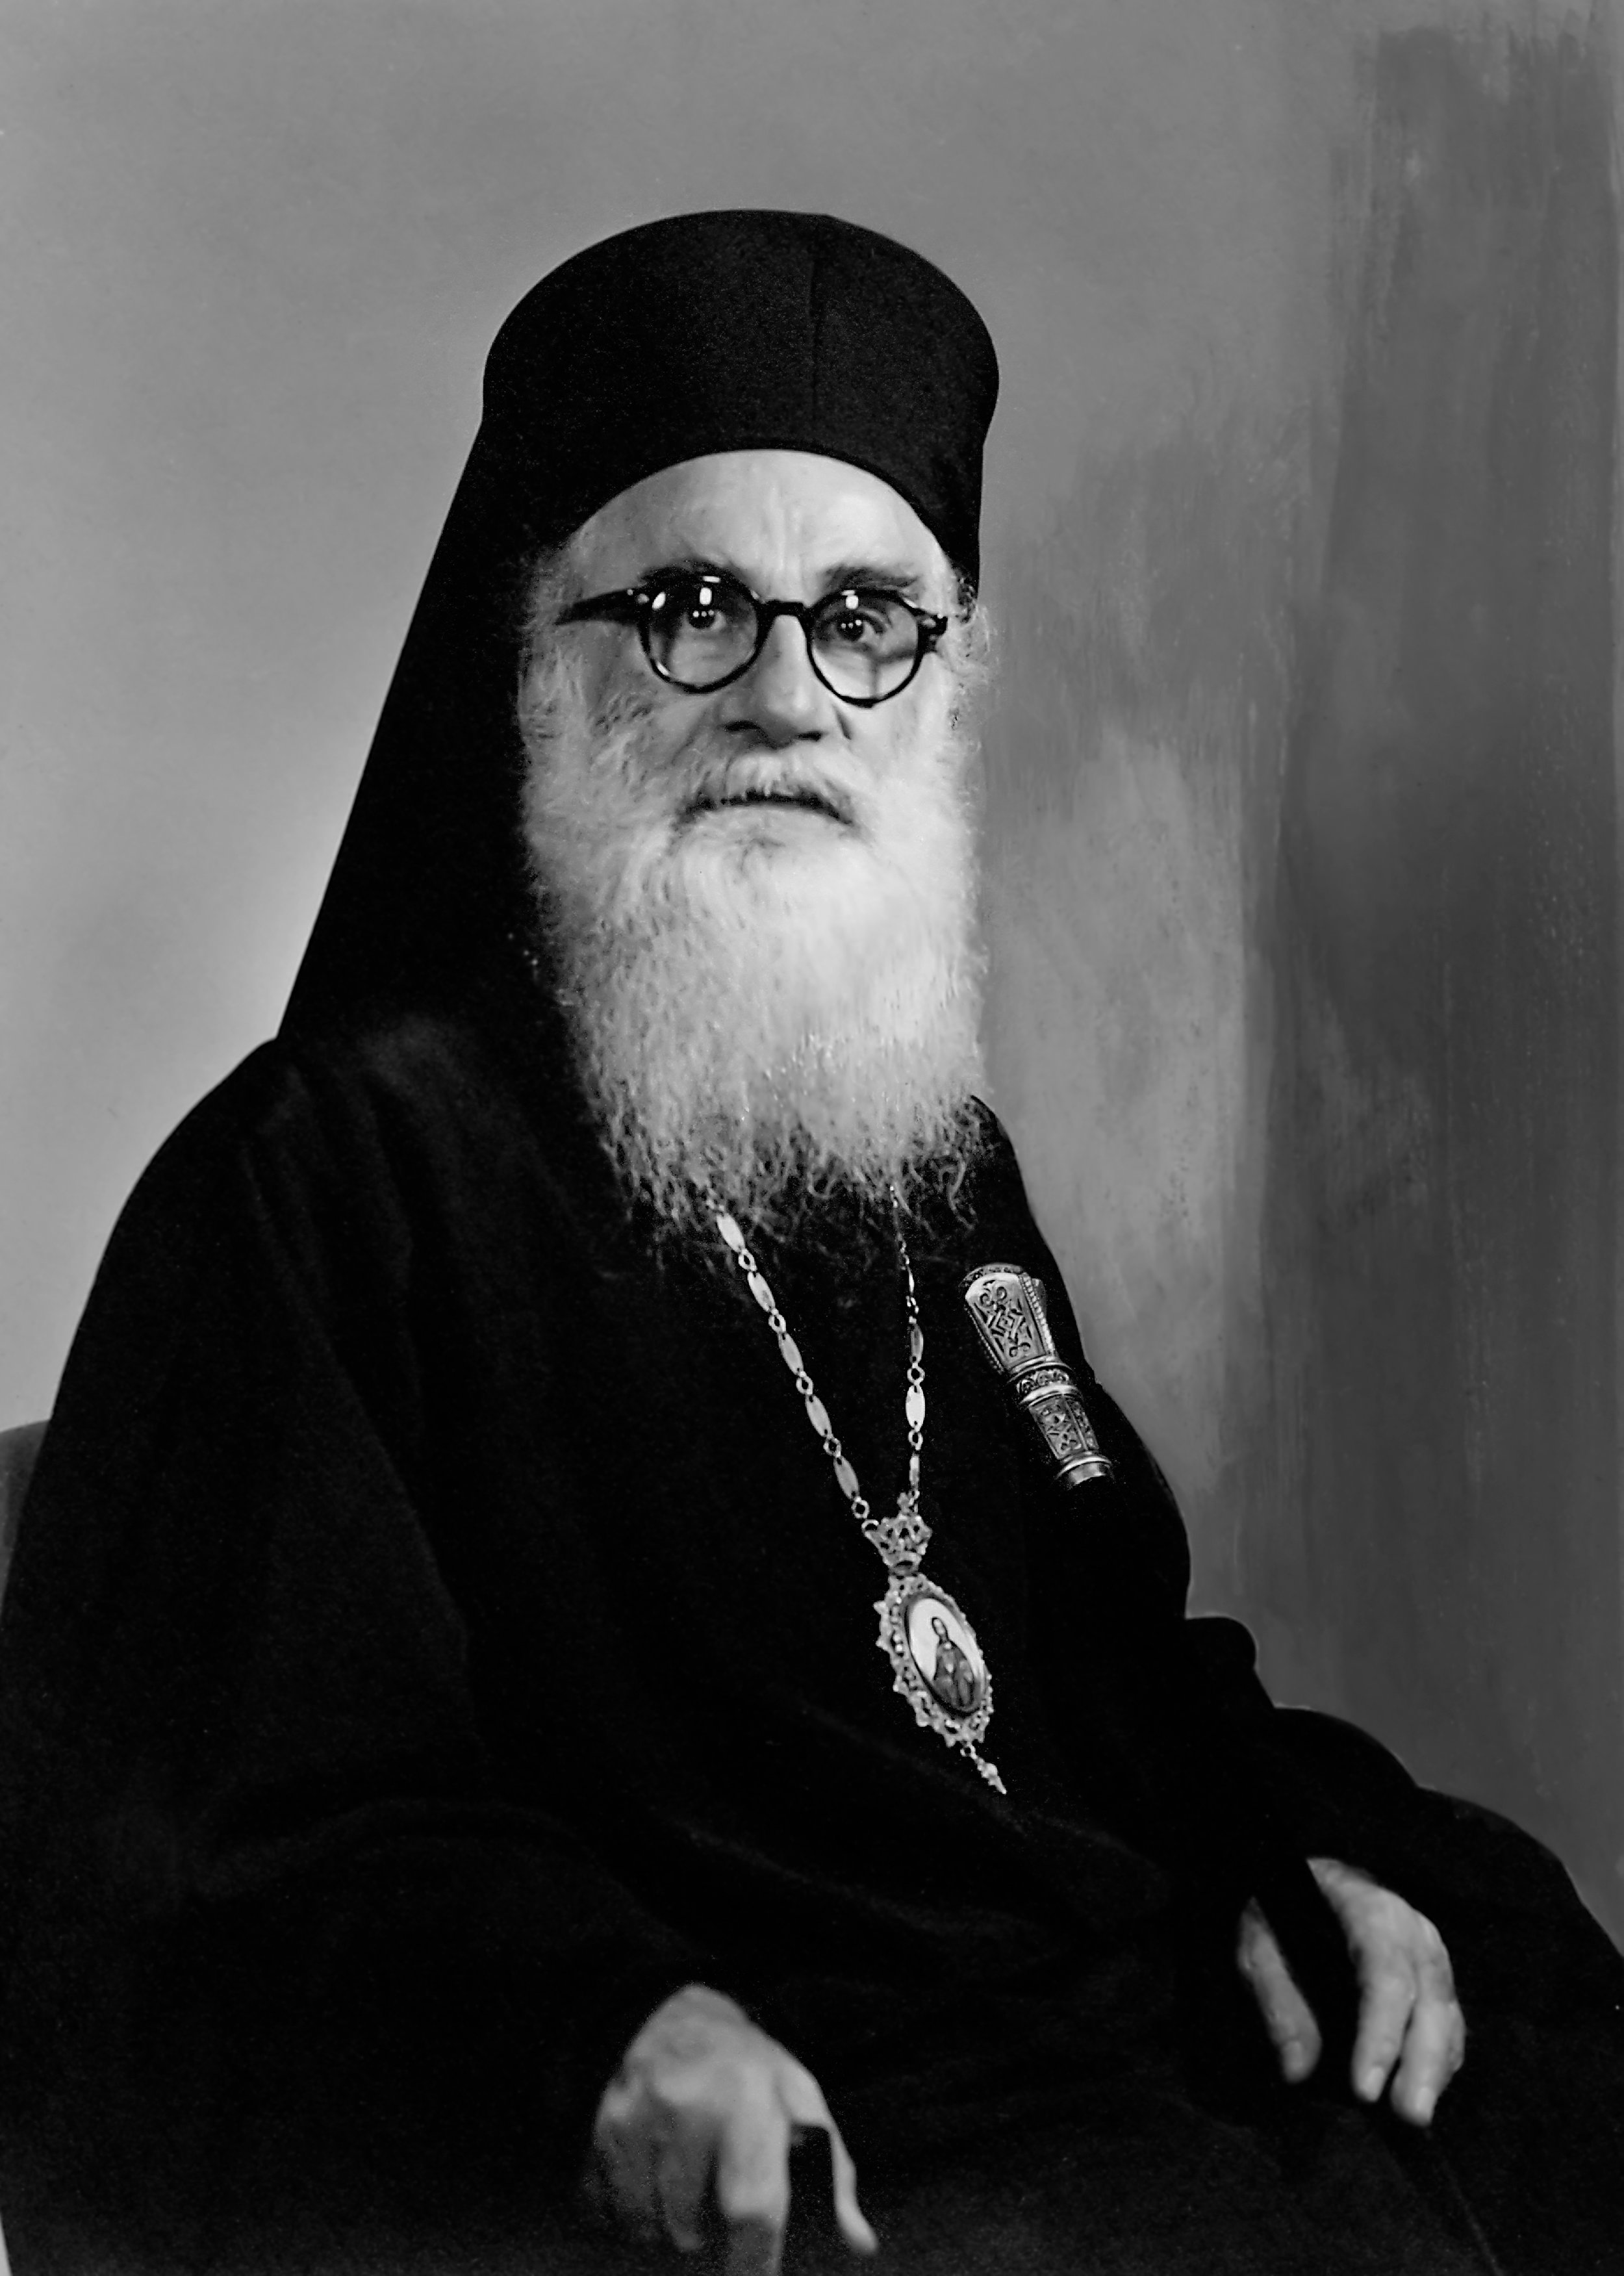 His Eminence Archbishop Michael